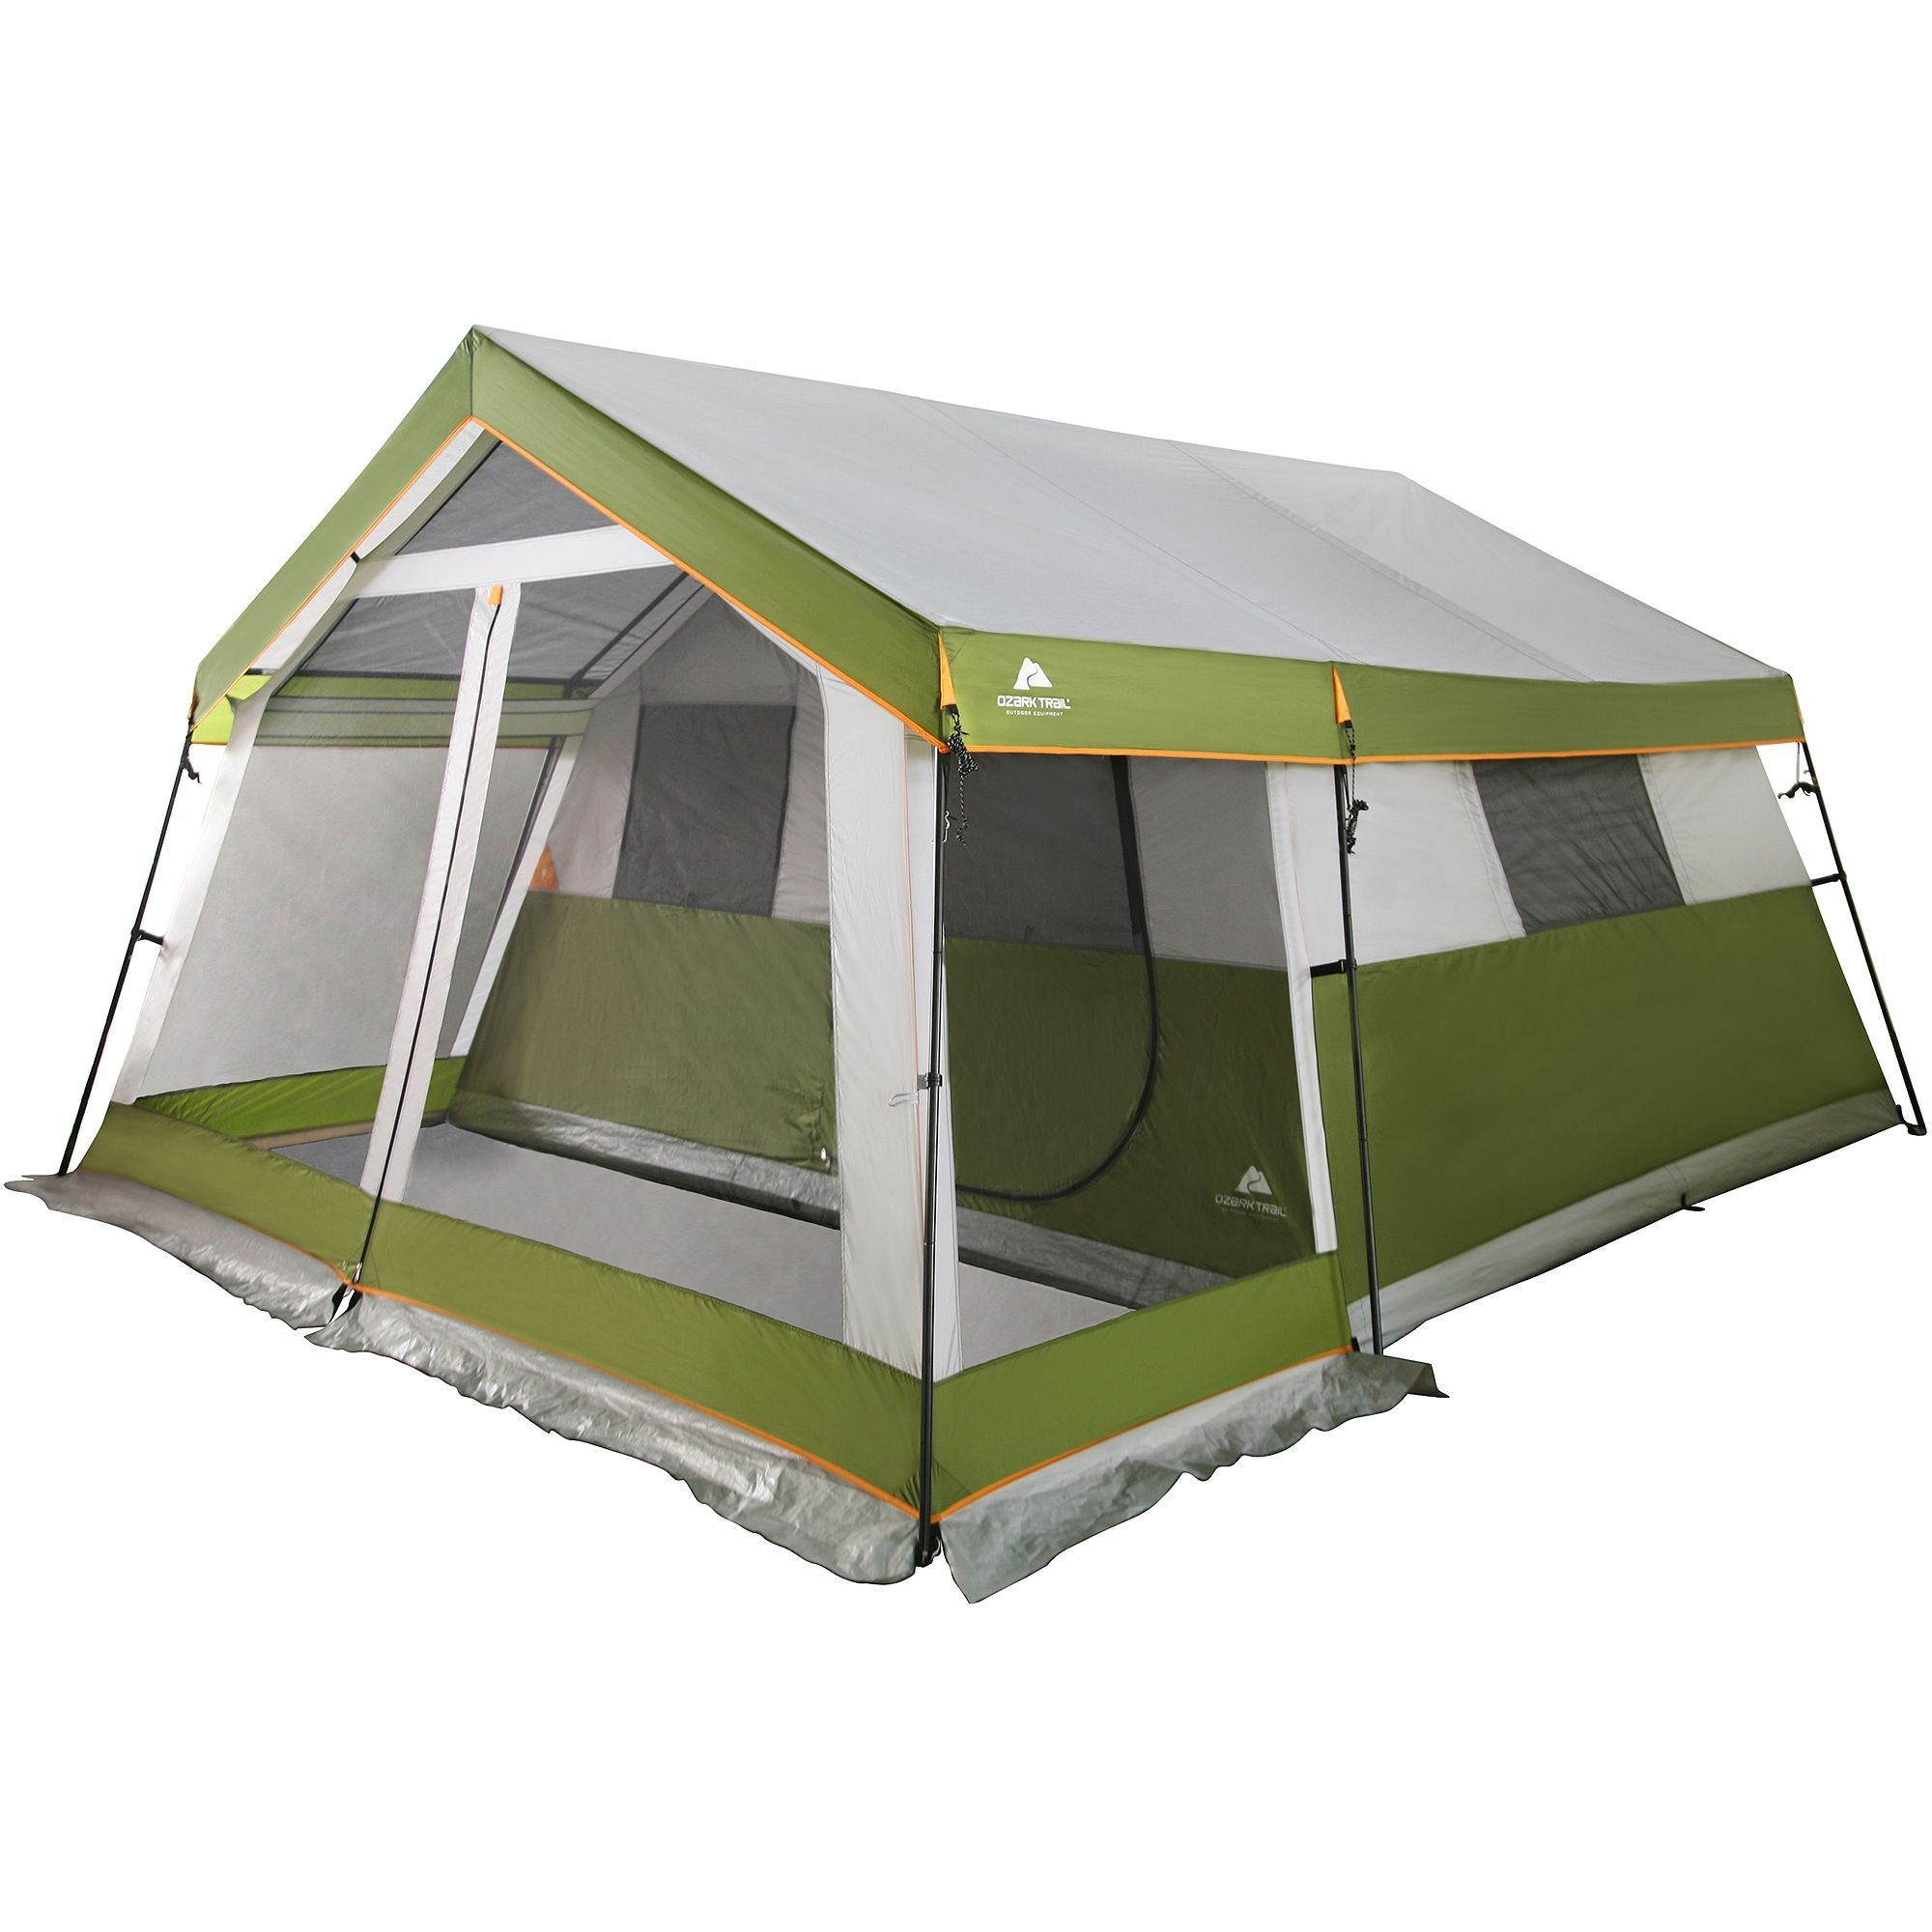 Ozark Trail 12-Person Cabin Tent with Screen Porch - Walmart.com  sc 1 st  Pinterest : ozark trail 12 person cabin tent - memphite.com